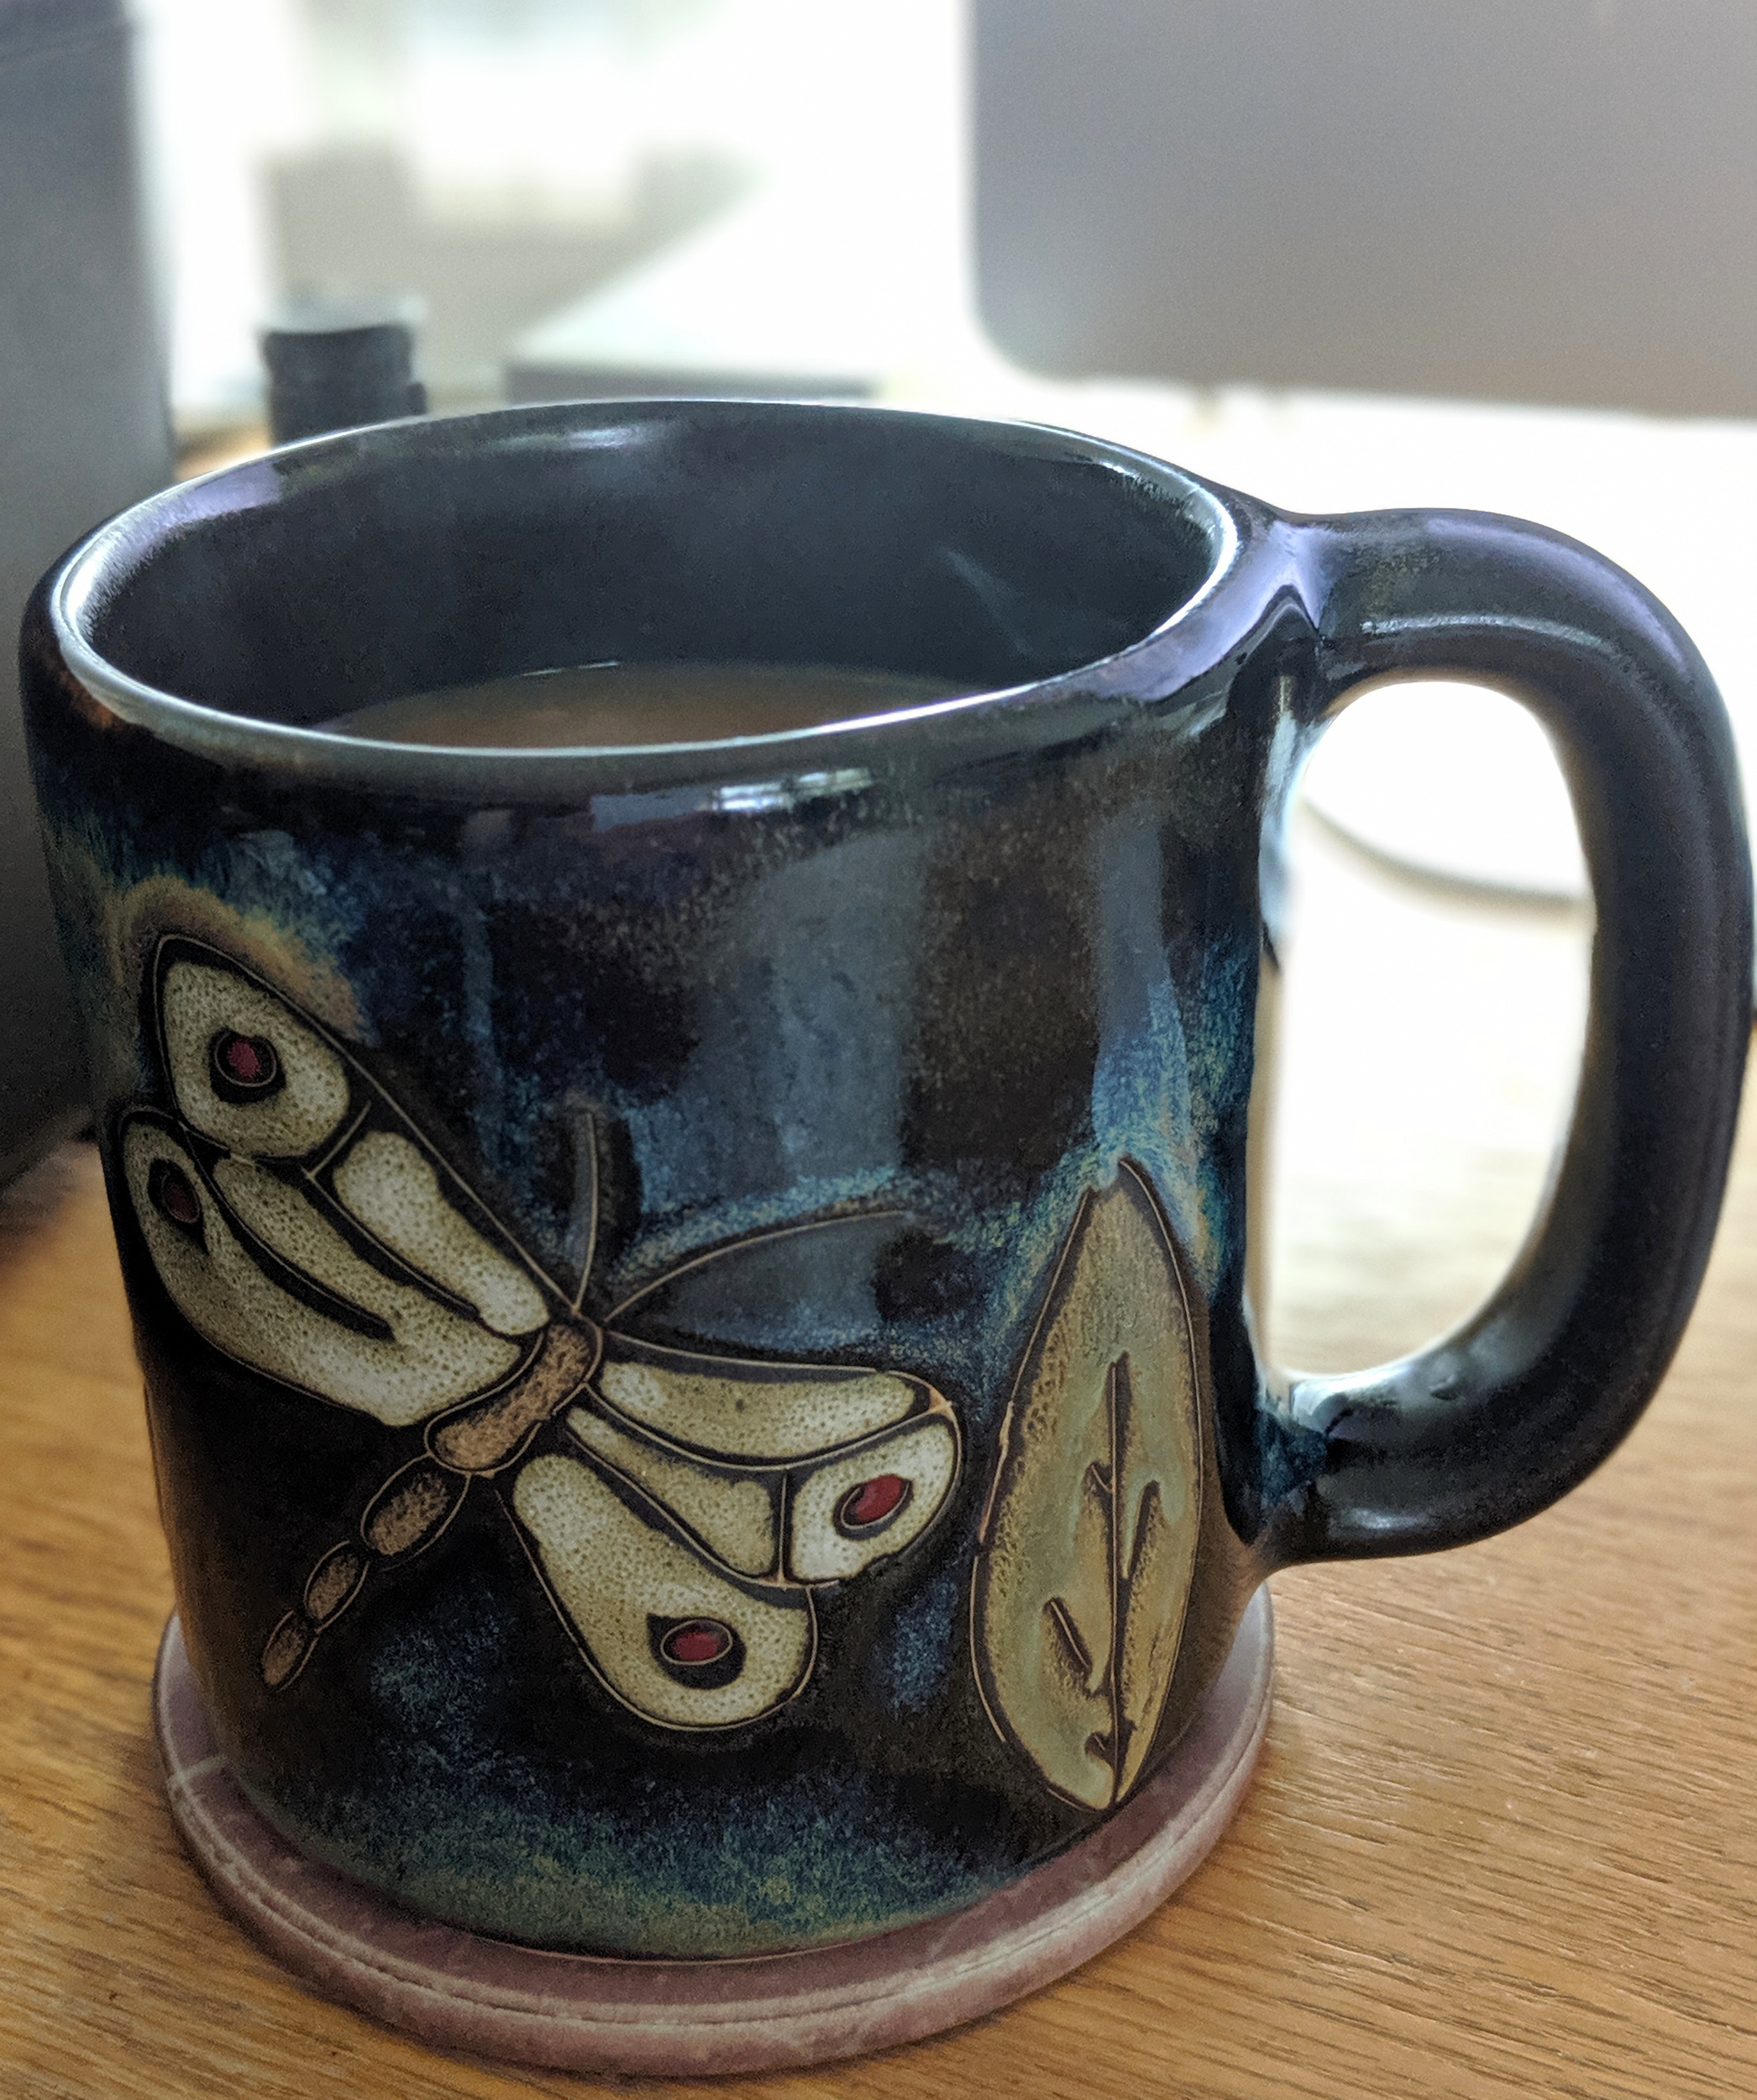 Photo of dragonfly coffee mug on a coaster on my desk.